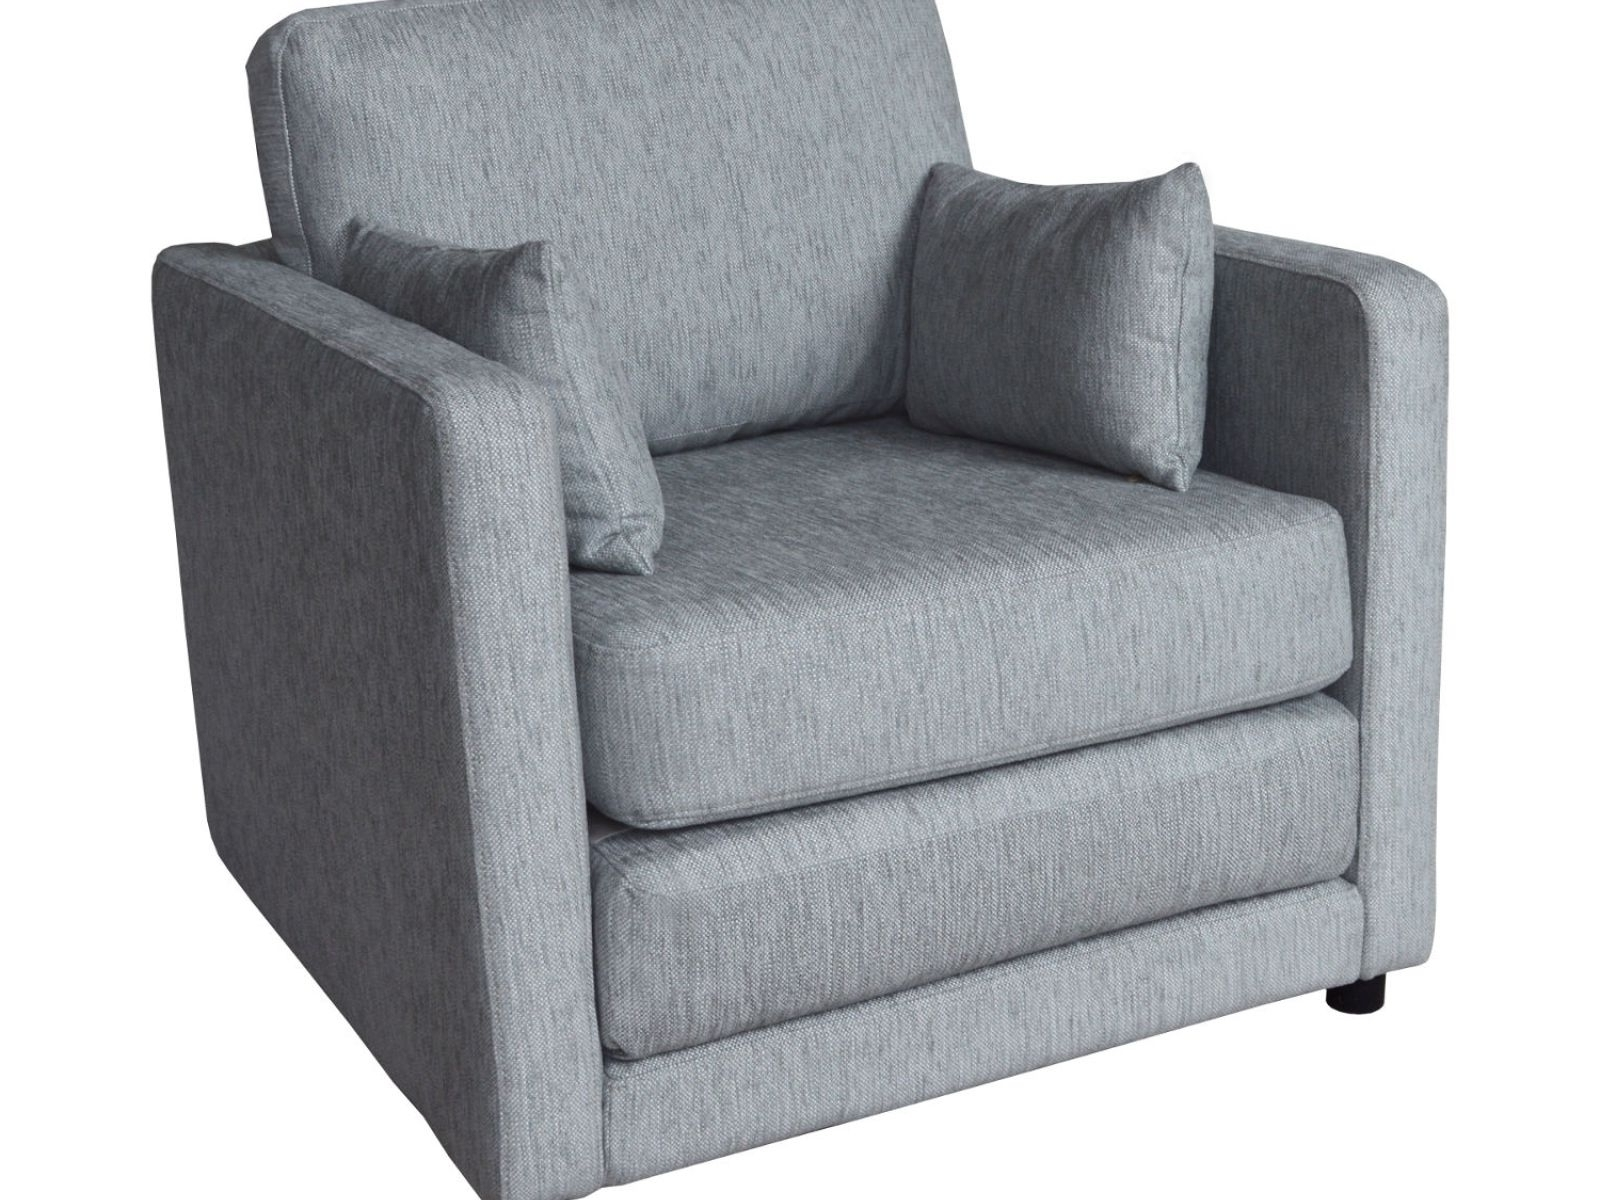 Single Sofas Throughout Well Liked Sofas : Single Sofa Chair Sofa Bed' Bed Settee' Single Couch And (View 16 of 20)